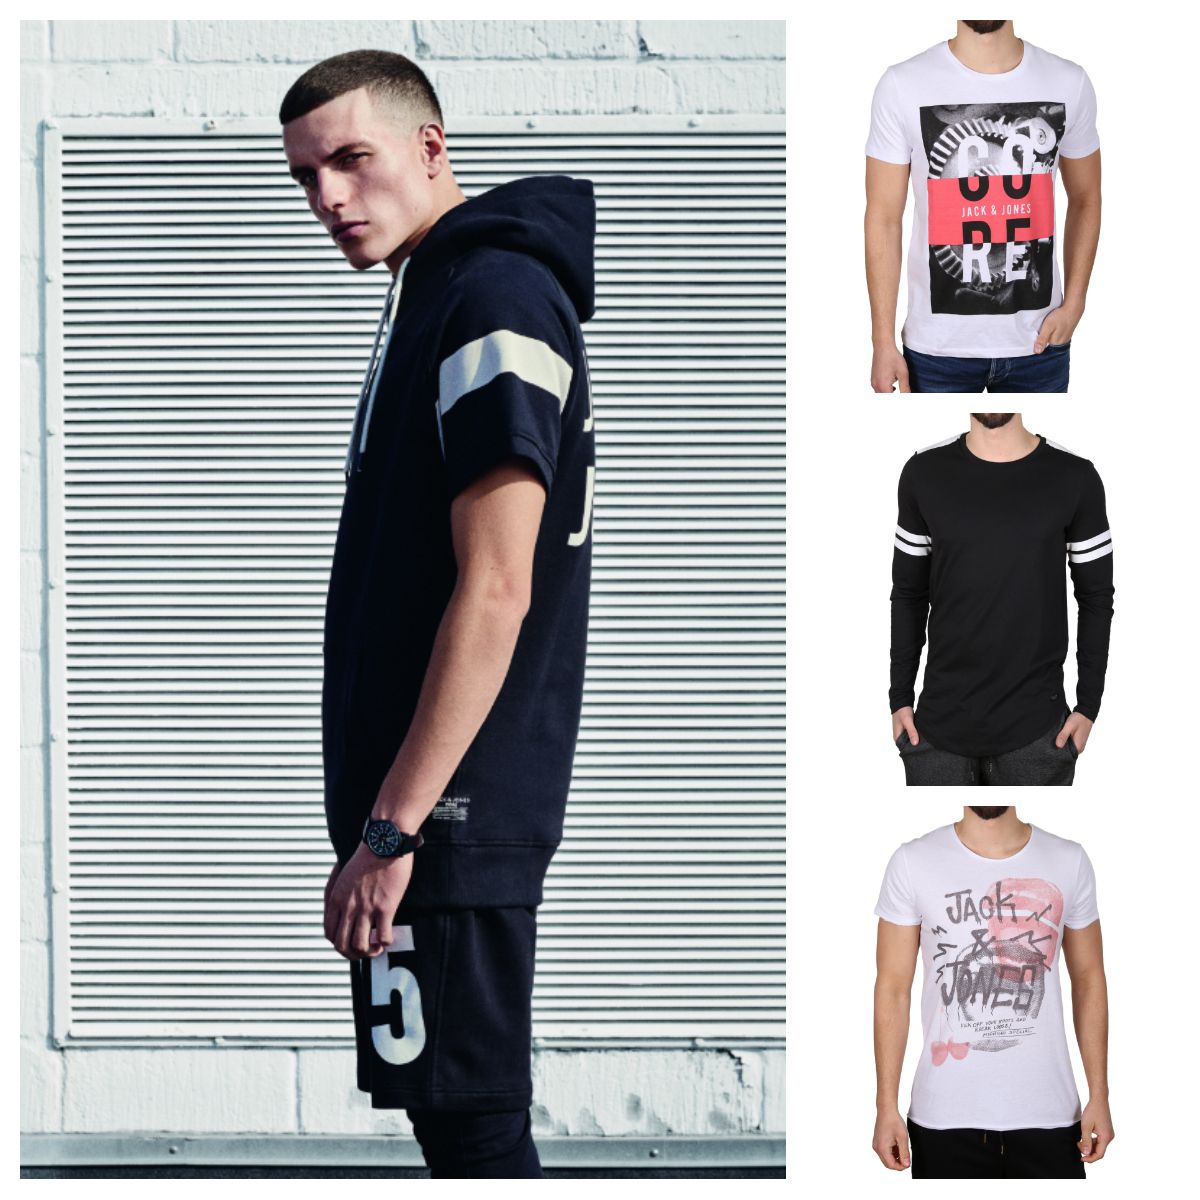 JACK & JONES COLLECTION  UP TO 40% OFF  TOP DISCOUNTS  http://www.hoodboyz.co.uk/